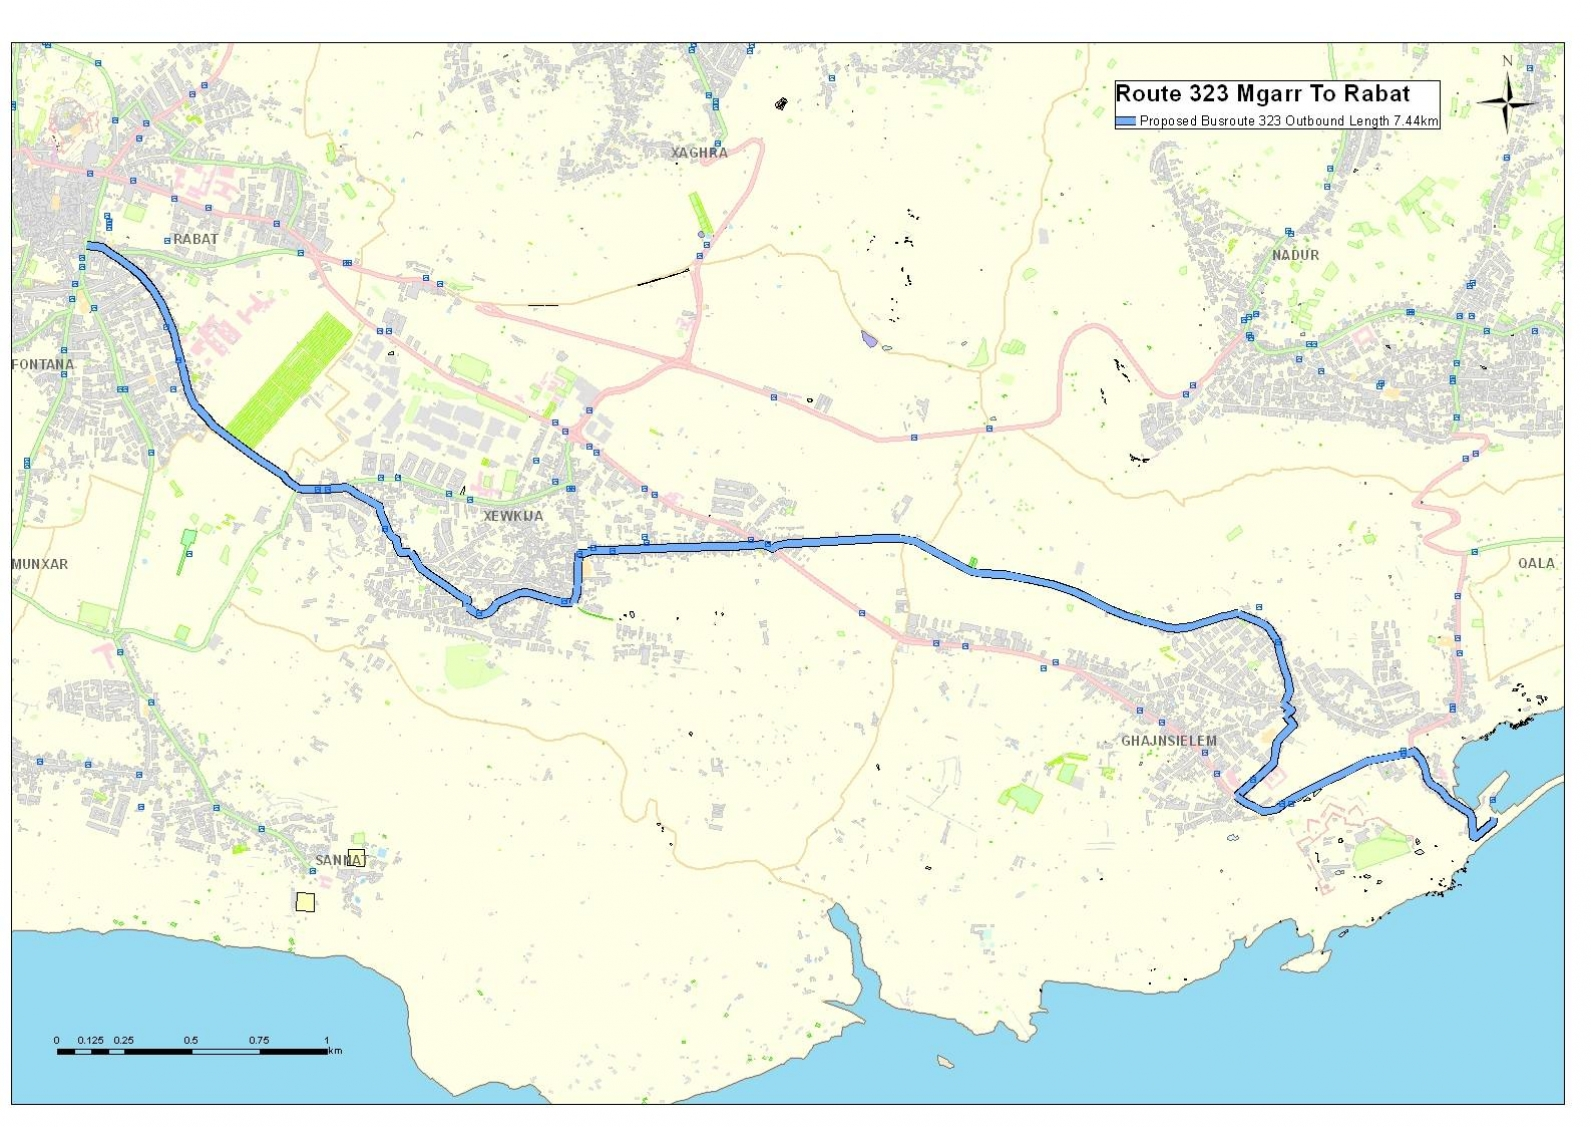 Land-current-network-routes-and-schedules-Gozo-30